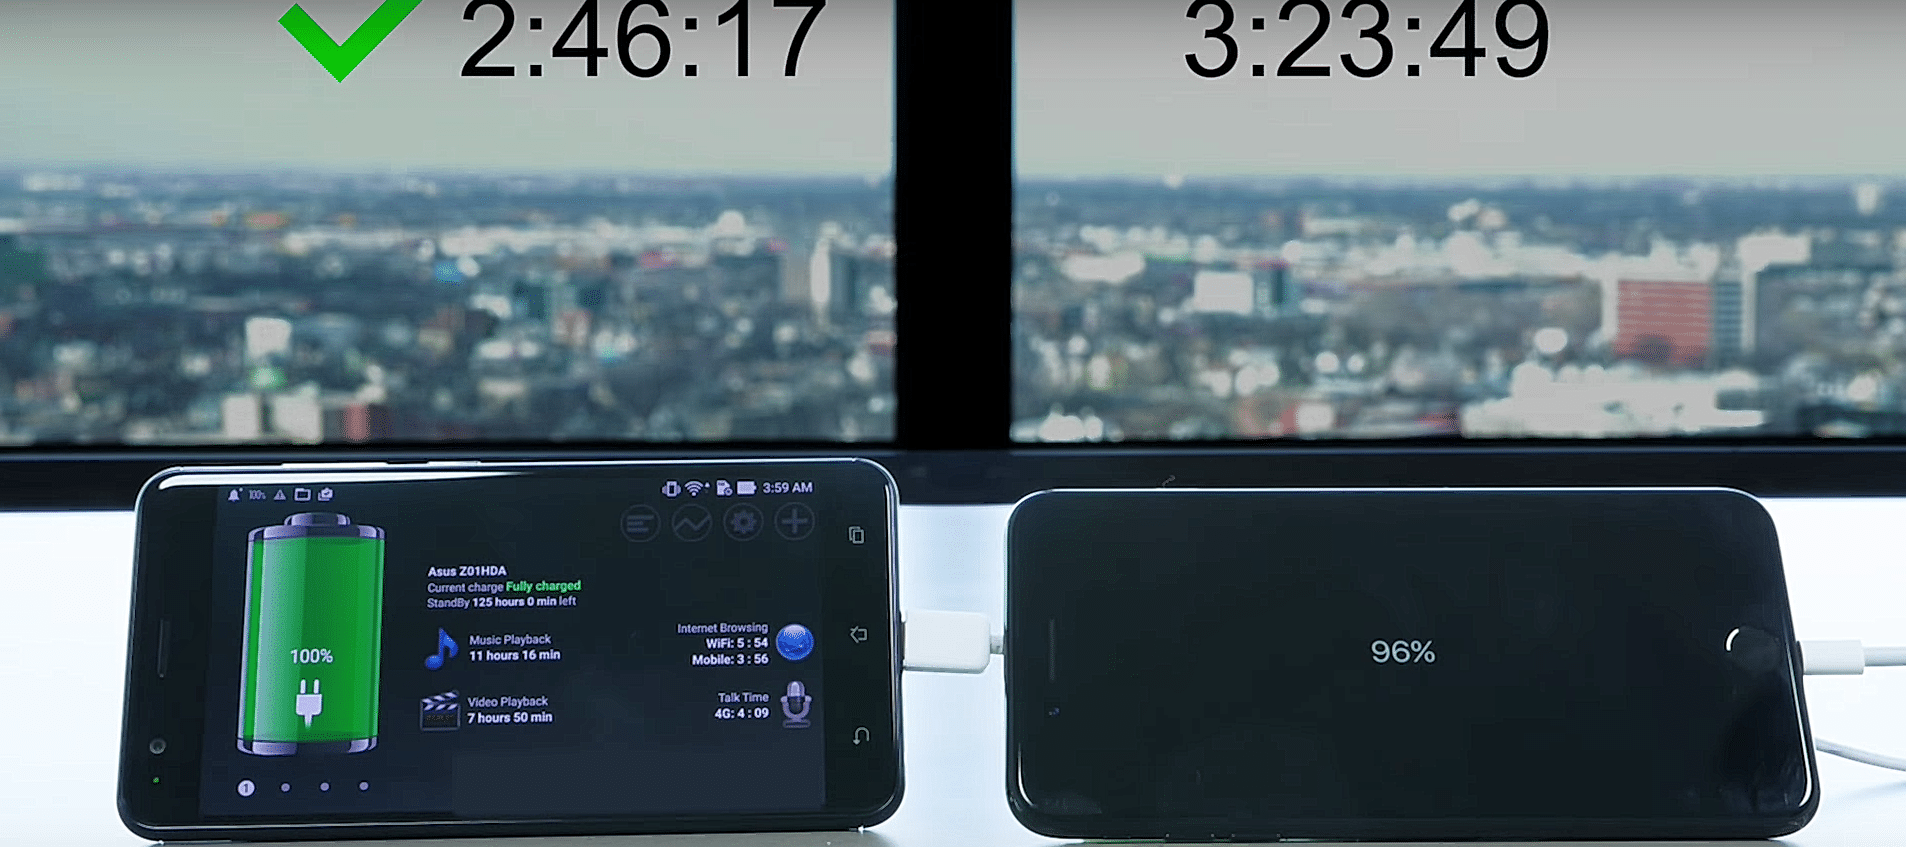 asus zenfone 3 zoom vs iphone 7 plus